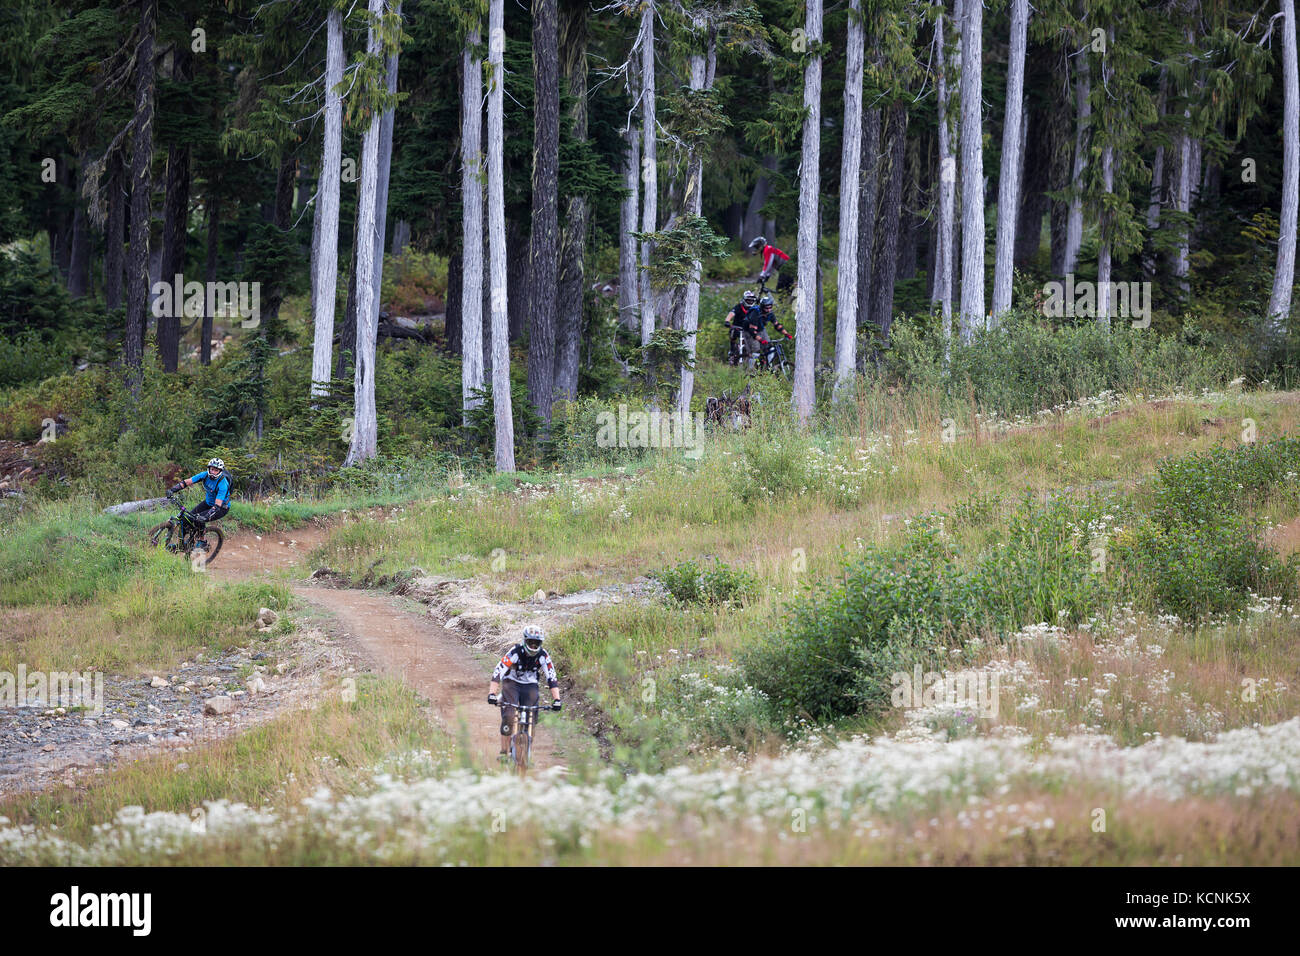 A group of mountain bikers emerges from the forest at the bottom of a trail at Mt. Washington, The Comox Valley, - Stock Image